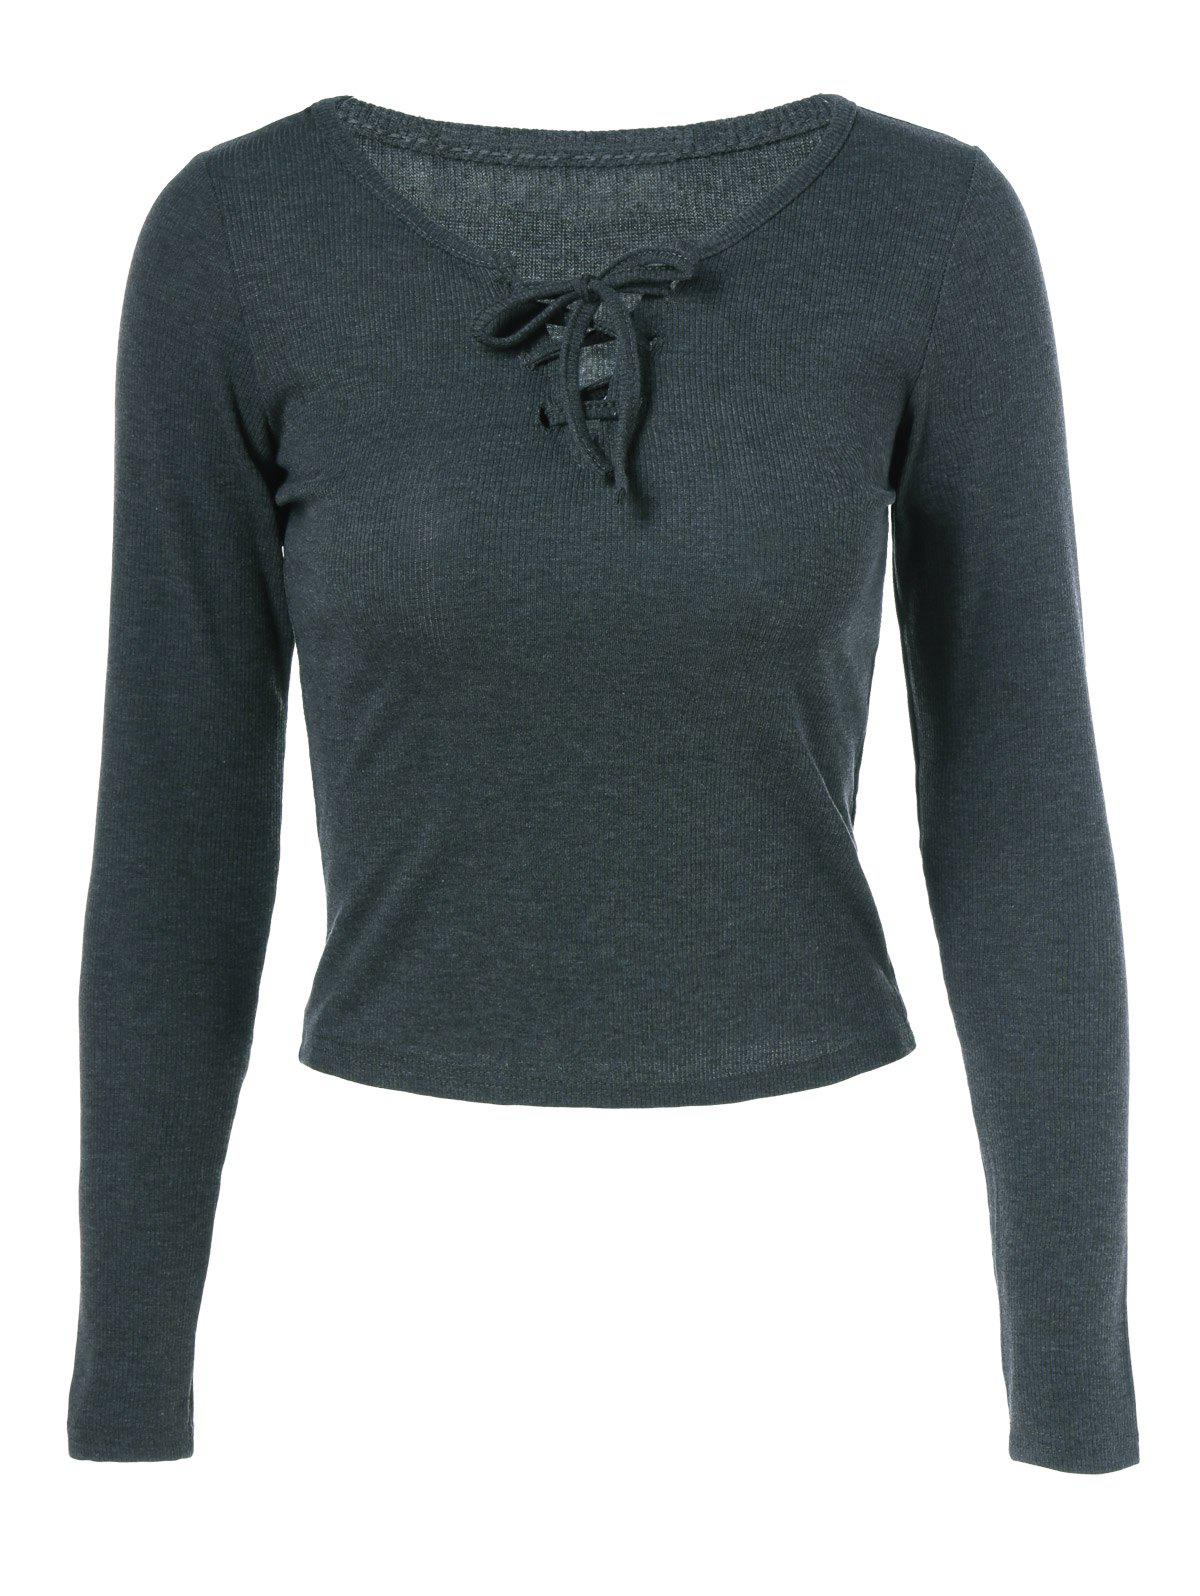 Lace Up Slimming Long Sleeve T Shirt - DEEP GRAY L